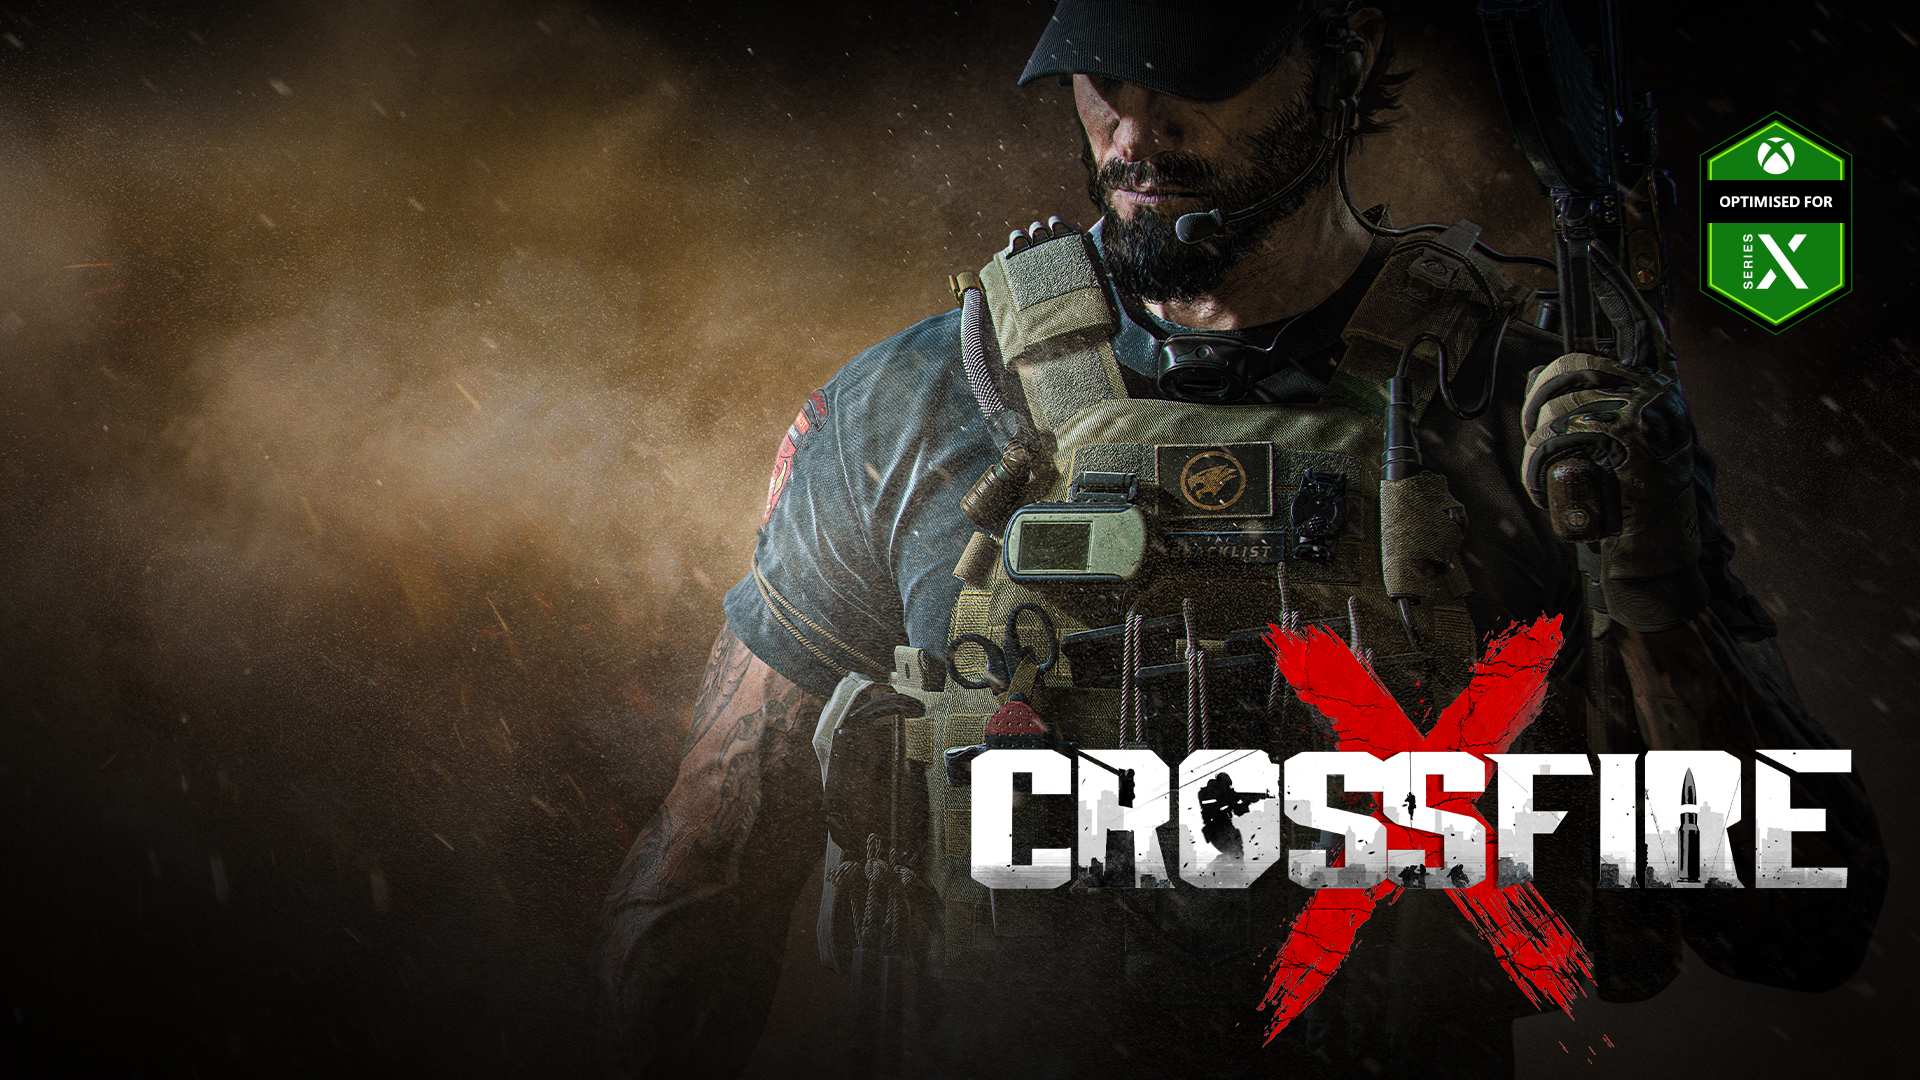 CrossfireX, Optimised for Xbox Series X, A heavily geared man stands amidst smoke and ash